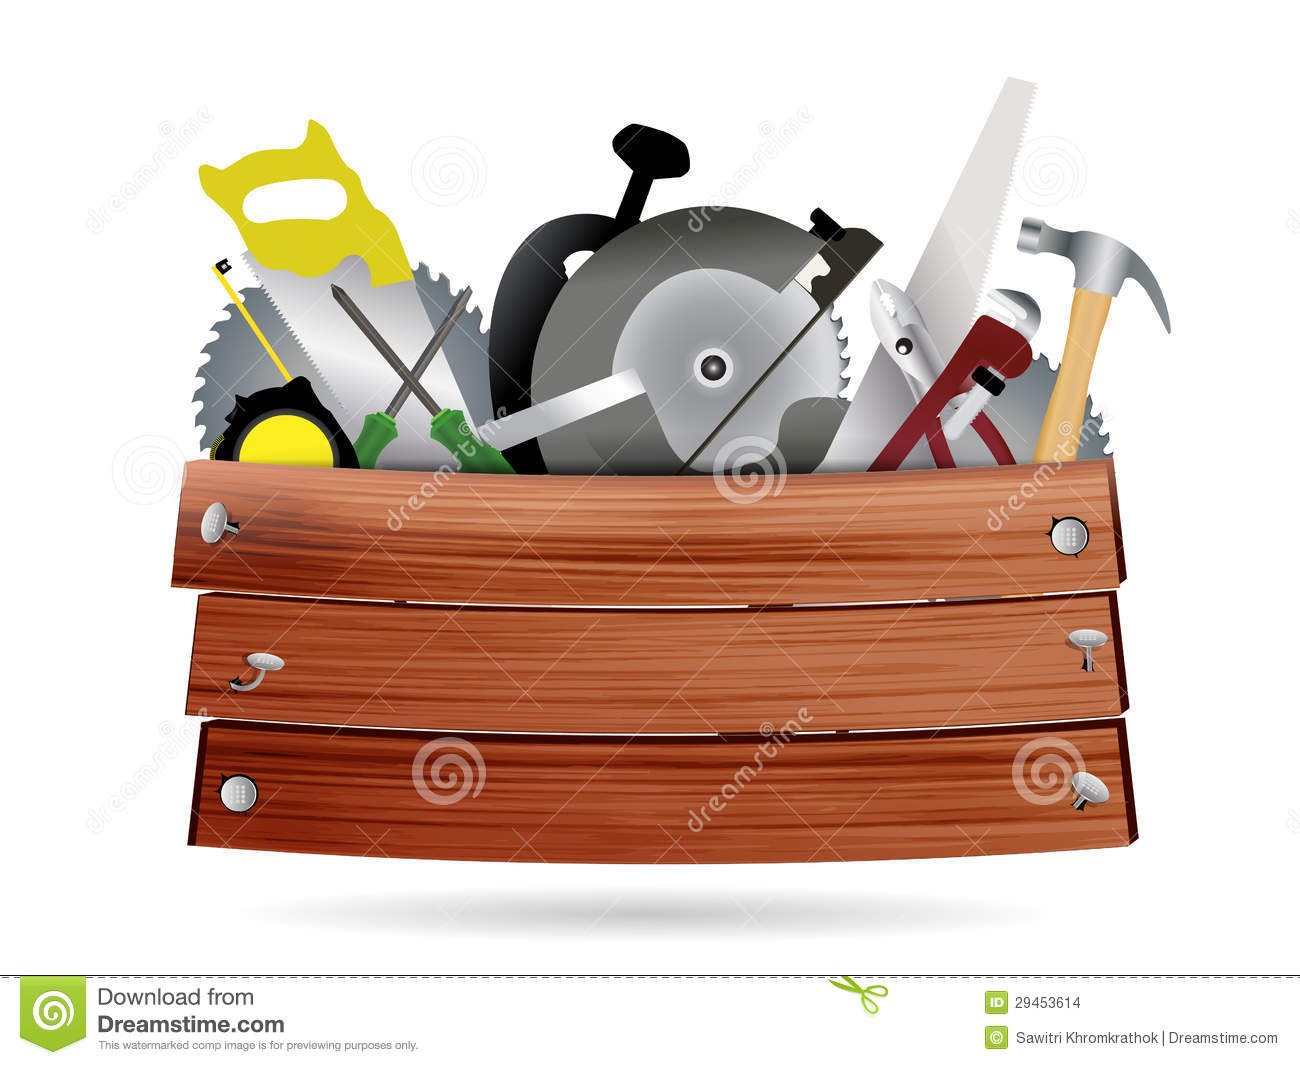 woodworking tools clipart - photo #47